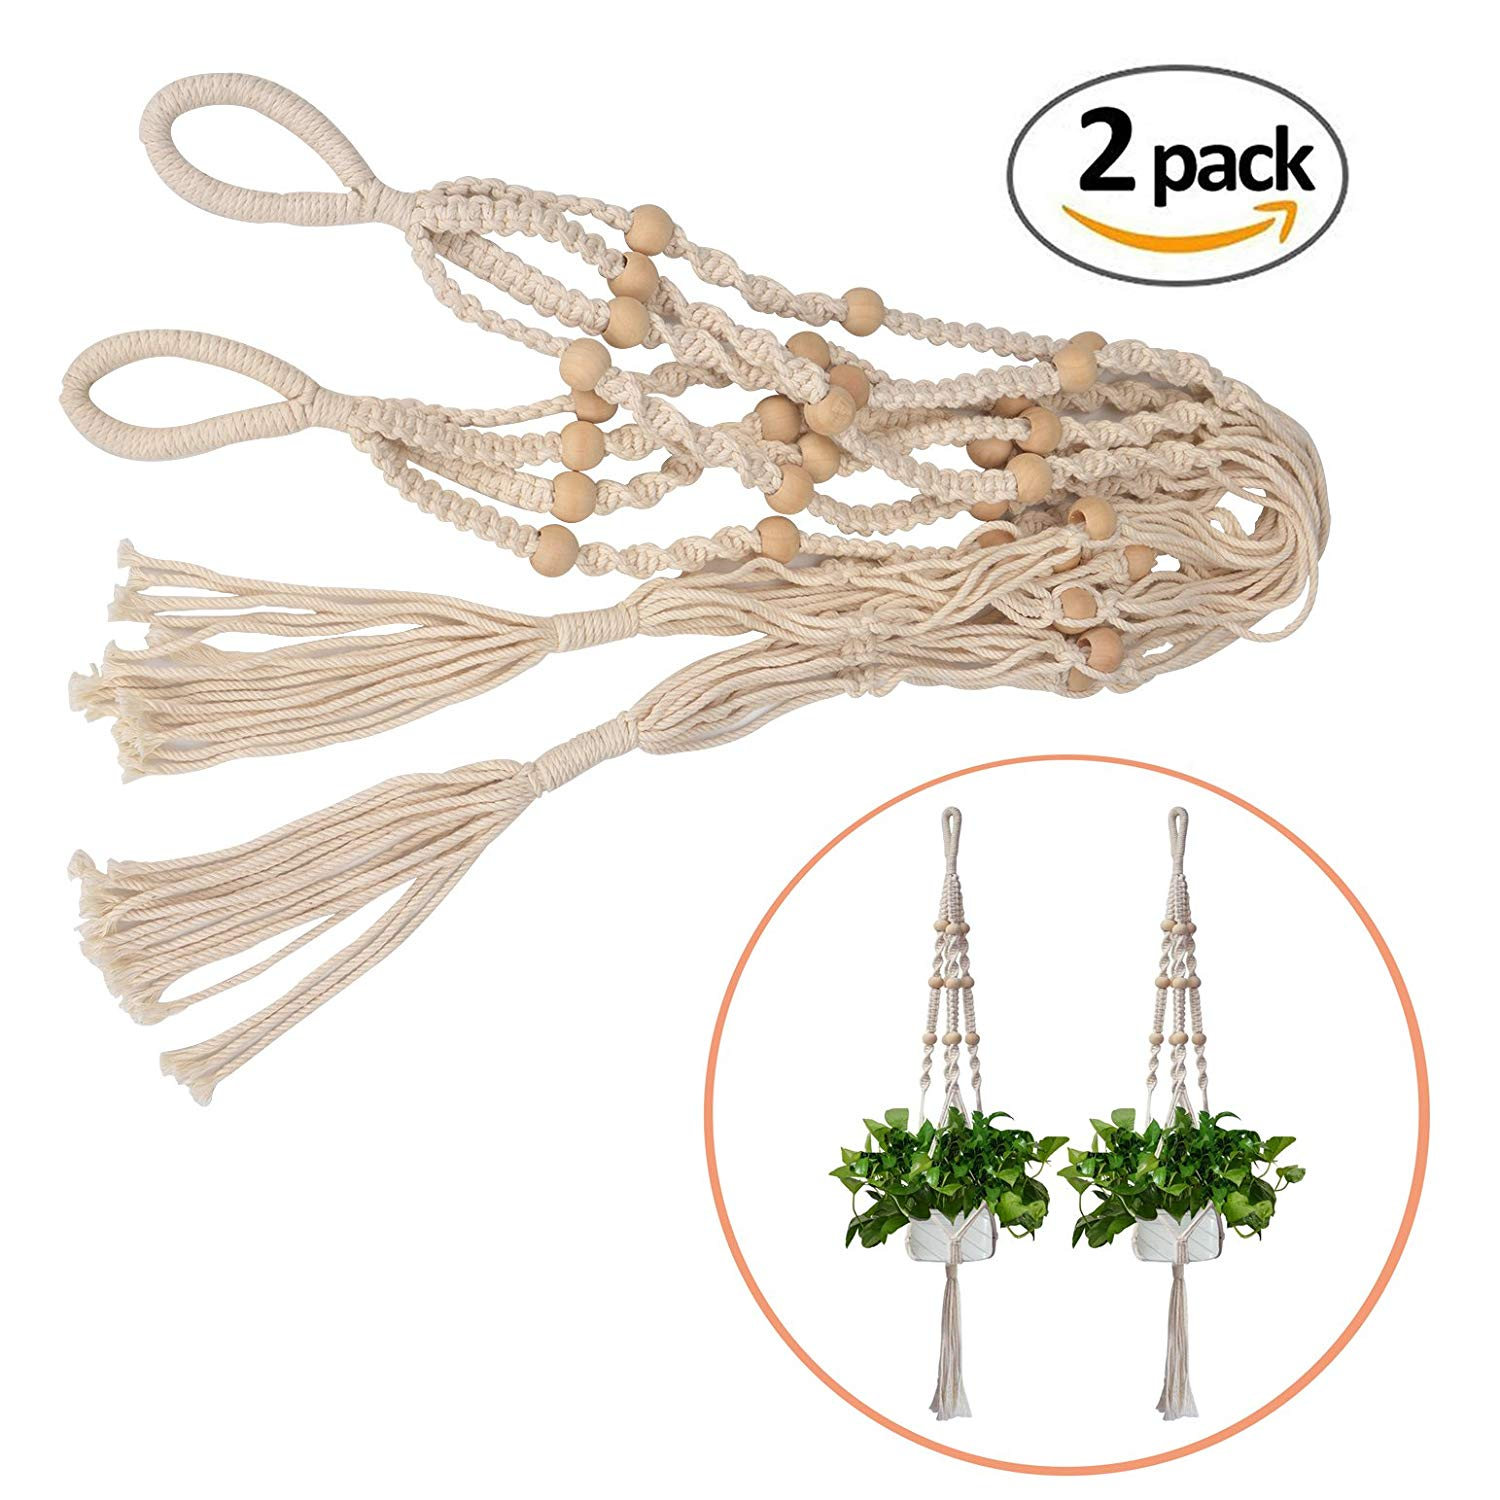 Jcoze Cotton Rope Plant Hangers Hanging Planter for Outdoor Indoor Wall Hanging Planter Holder 2 Pcs